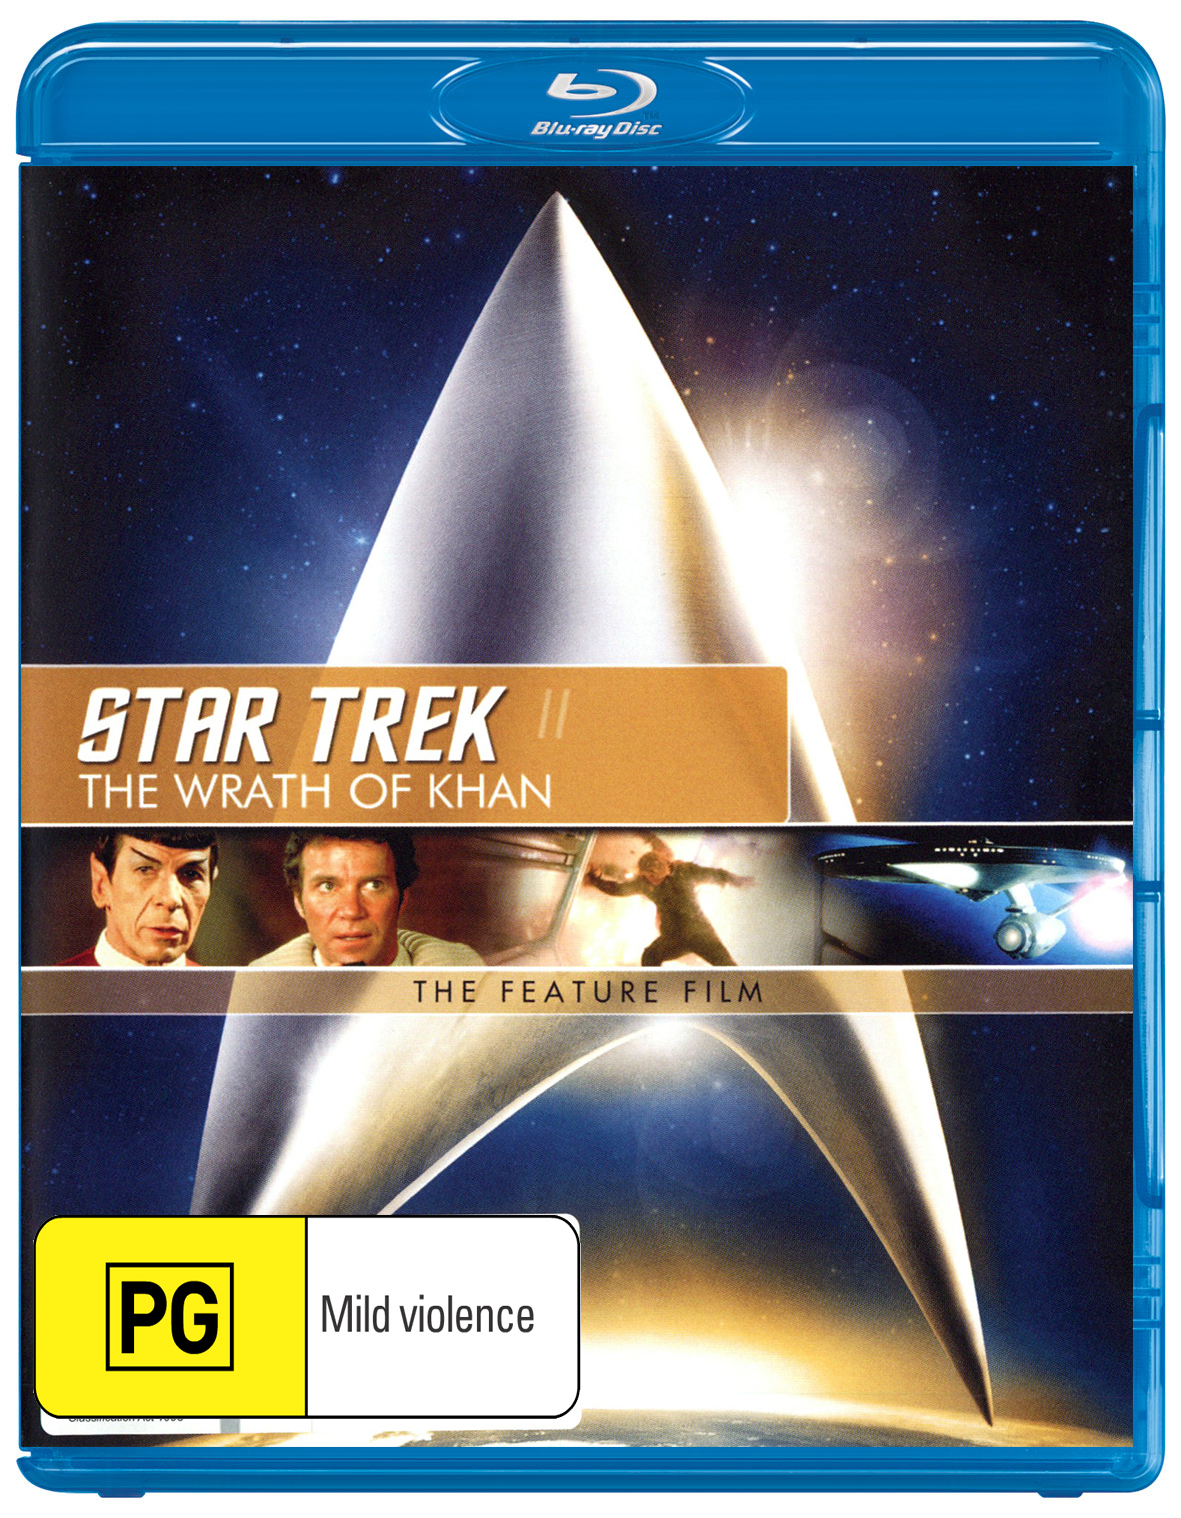 Star Trek II: The Wrath of Khan - The Feature Film on Blu-ray image